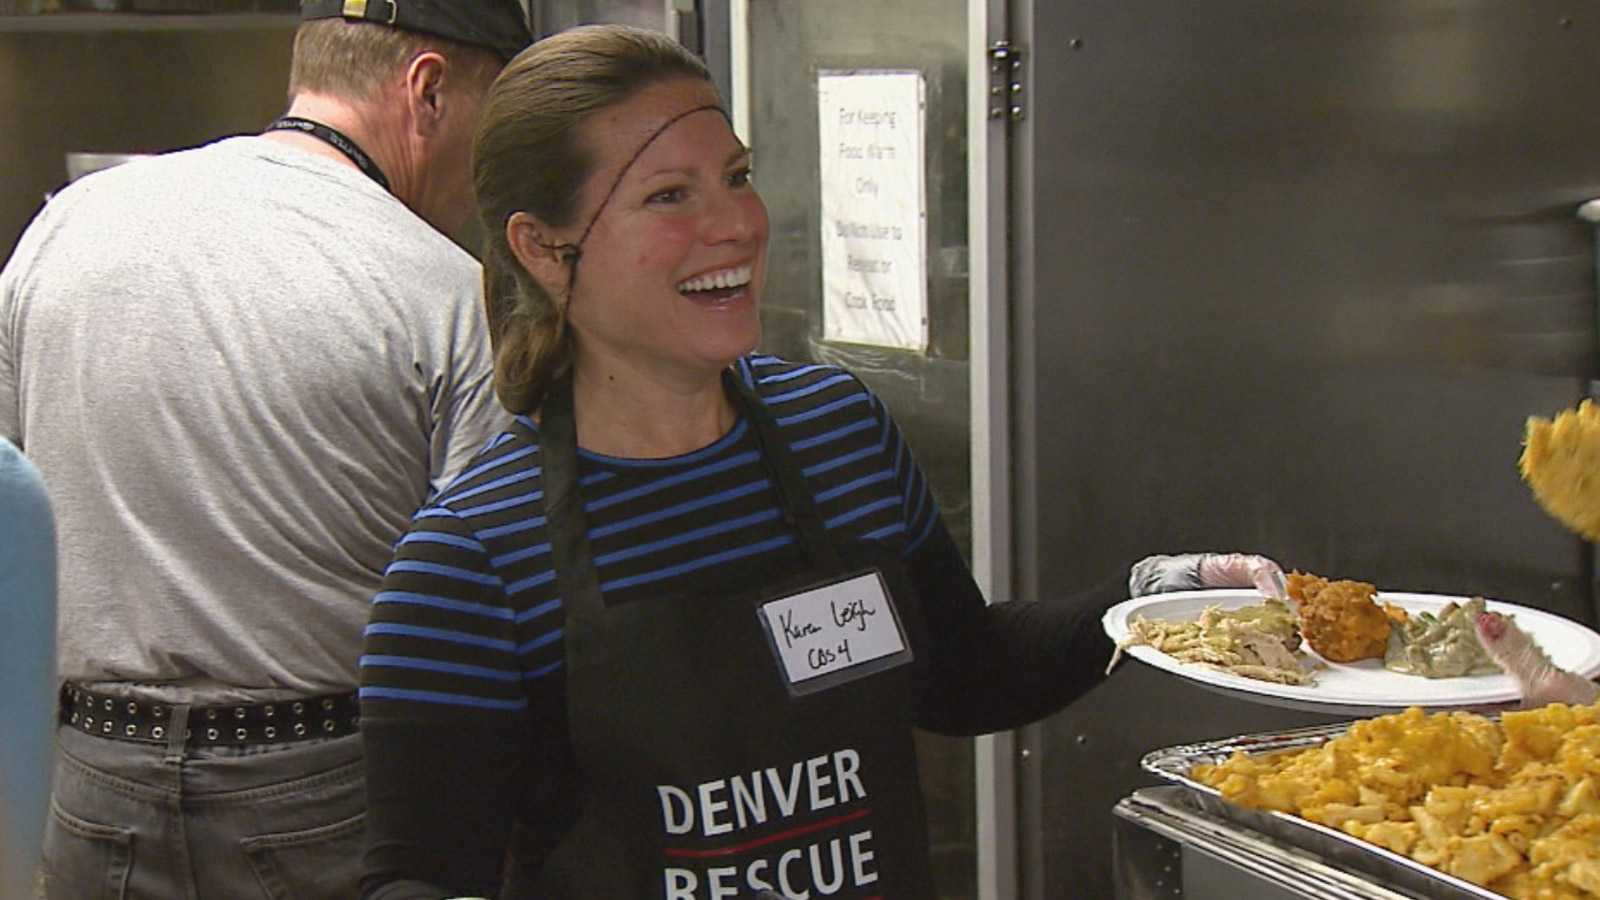 CBS4's Karen Leigh served lunch at the Denver Rescue Mission on Wednesday (credit: CBS)